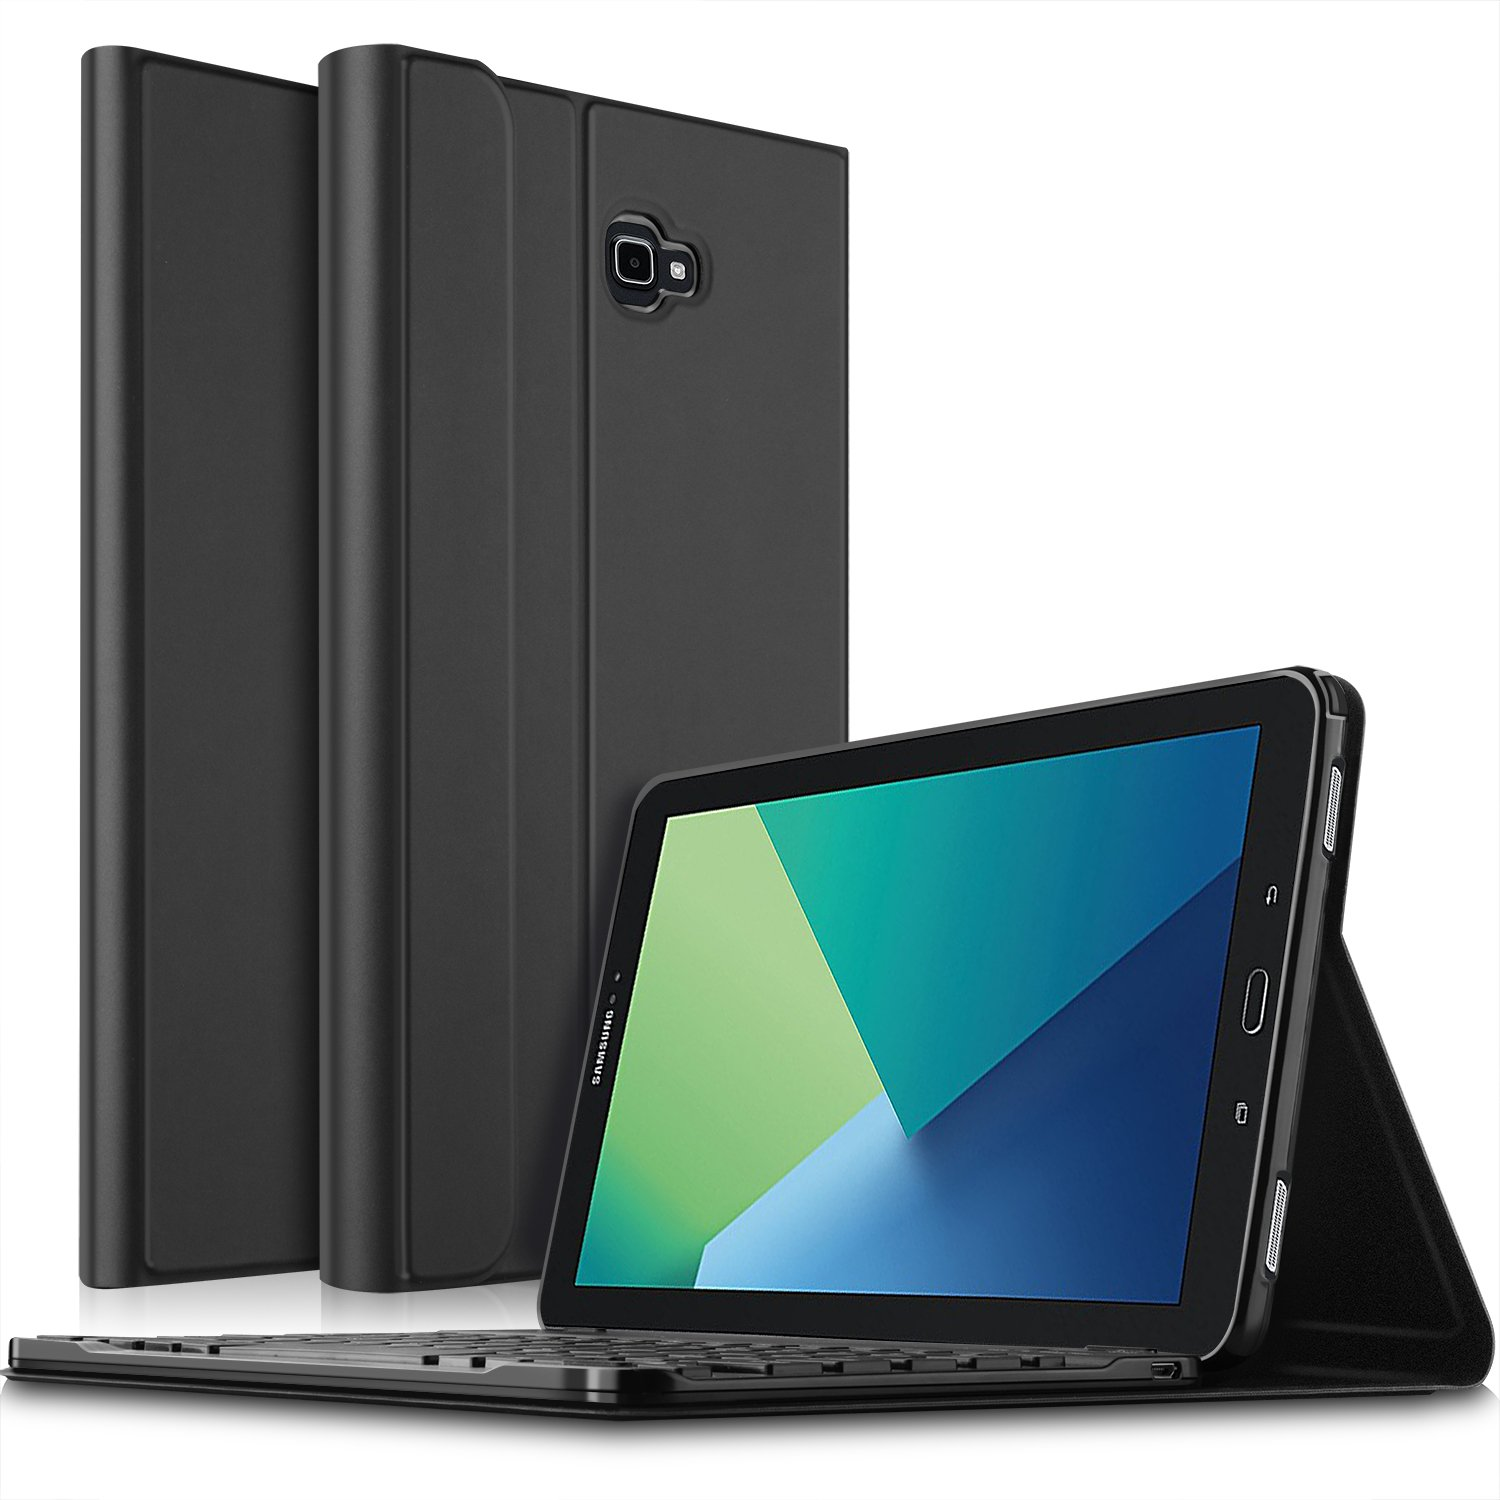 IVSO Samsung Galaxy Tab A 10.1 P580 Case with Keyboard - Ultra-Thin Detachable Wireless Keyboard Front Prop Stand Case/Cover for Samsung Galaxy Tab A 10.1 with S Pen P580 Tablet (Black)